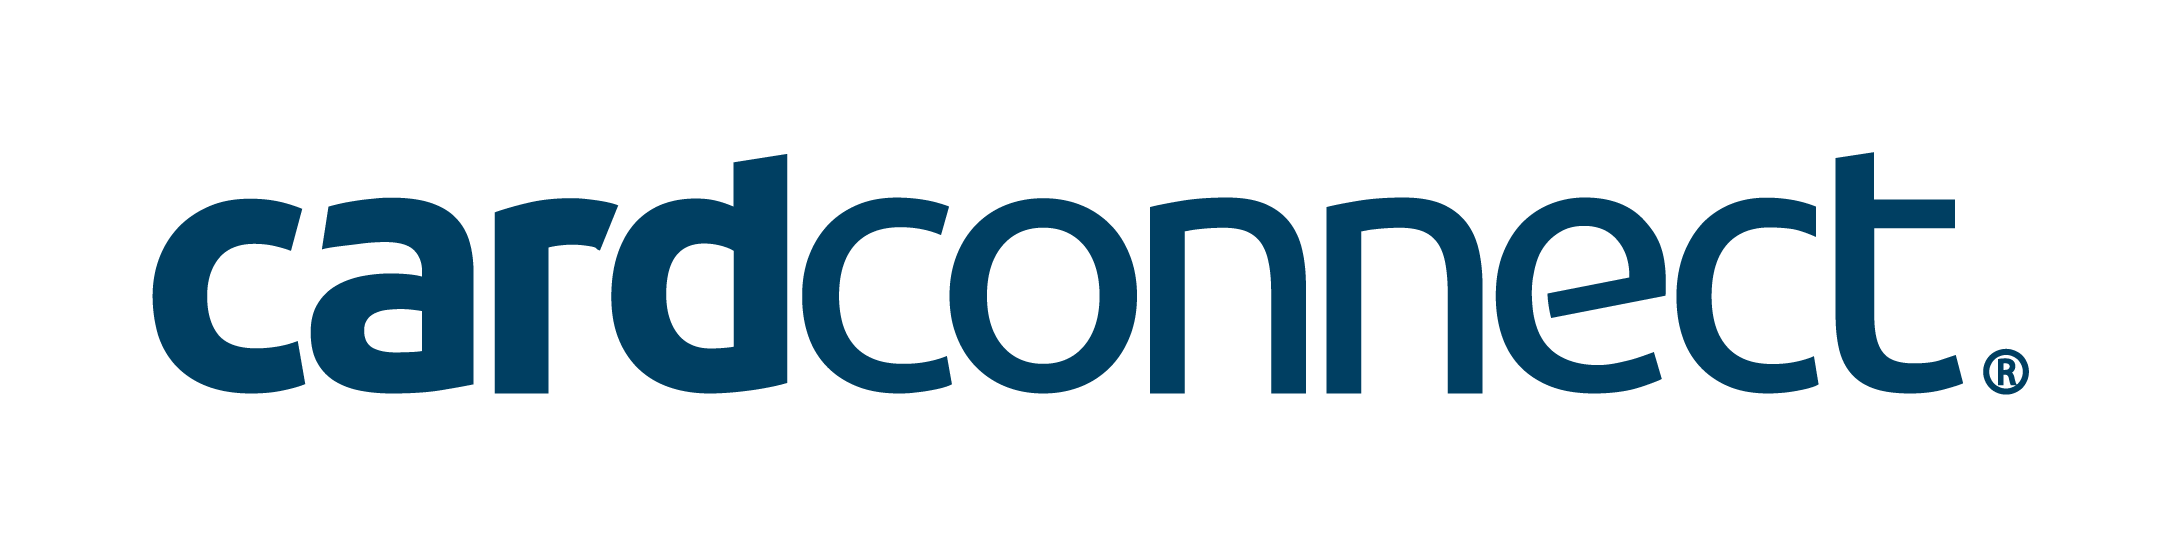 CardConnect Appoints Jason Williams as Senior Vice President of Business Development